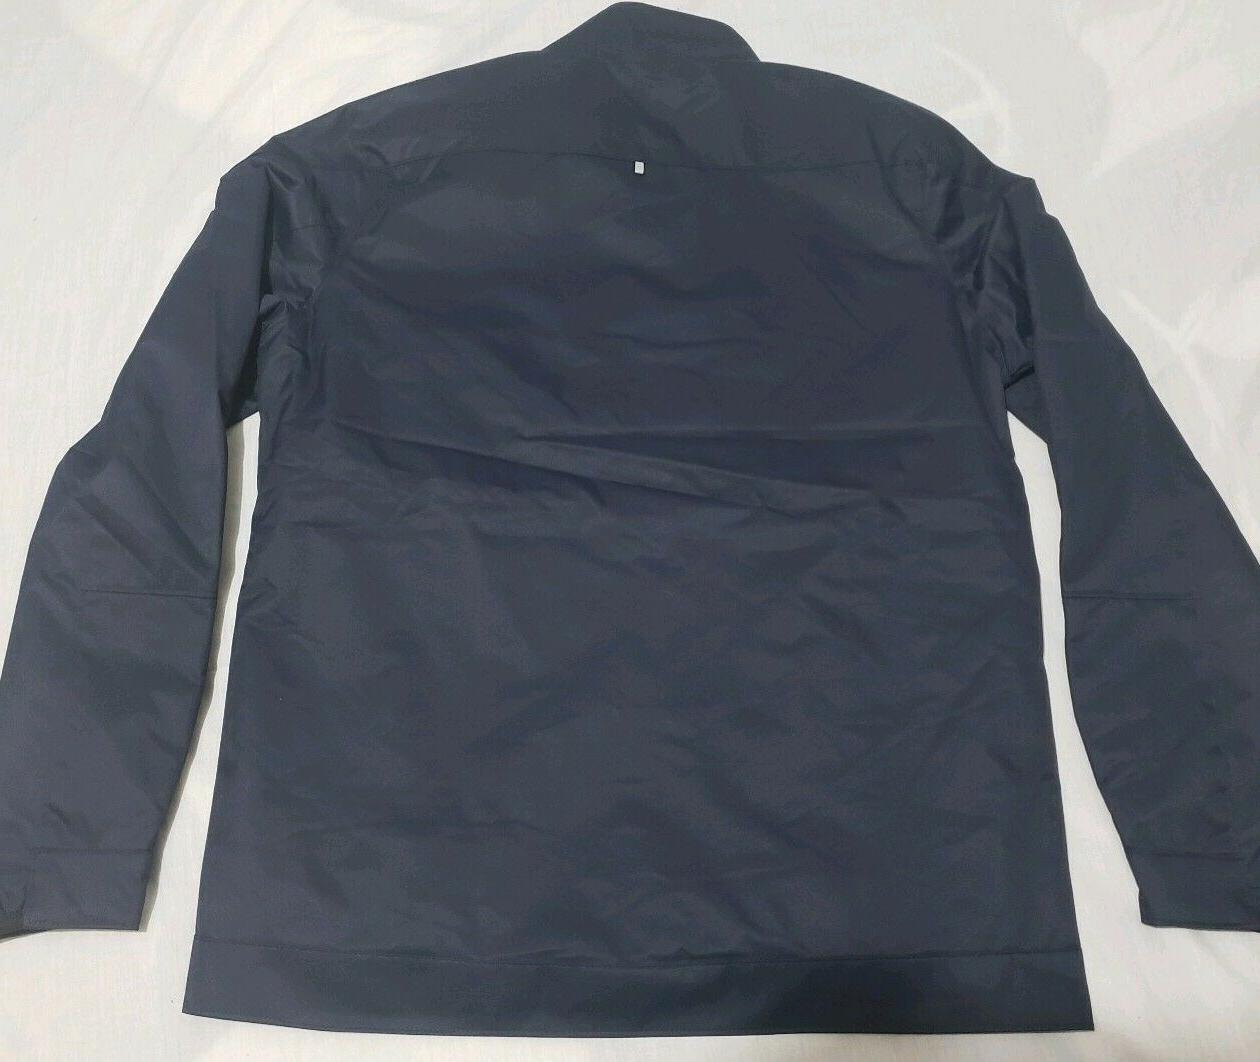 Oakley Performance Jacket SizeS #412423